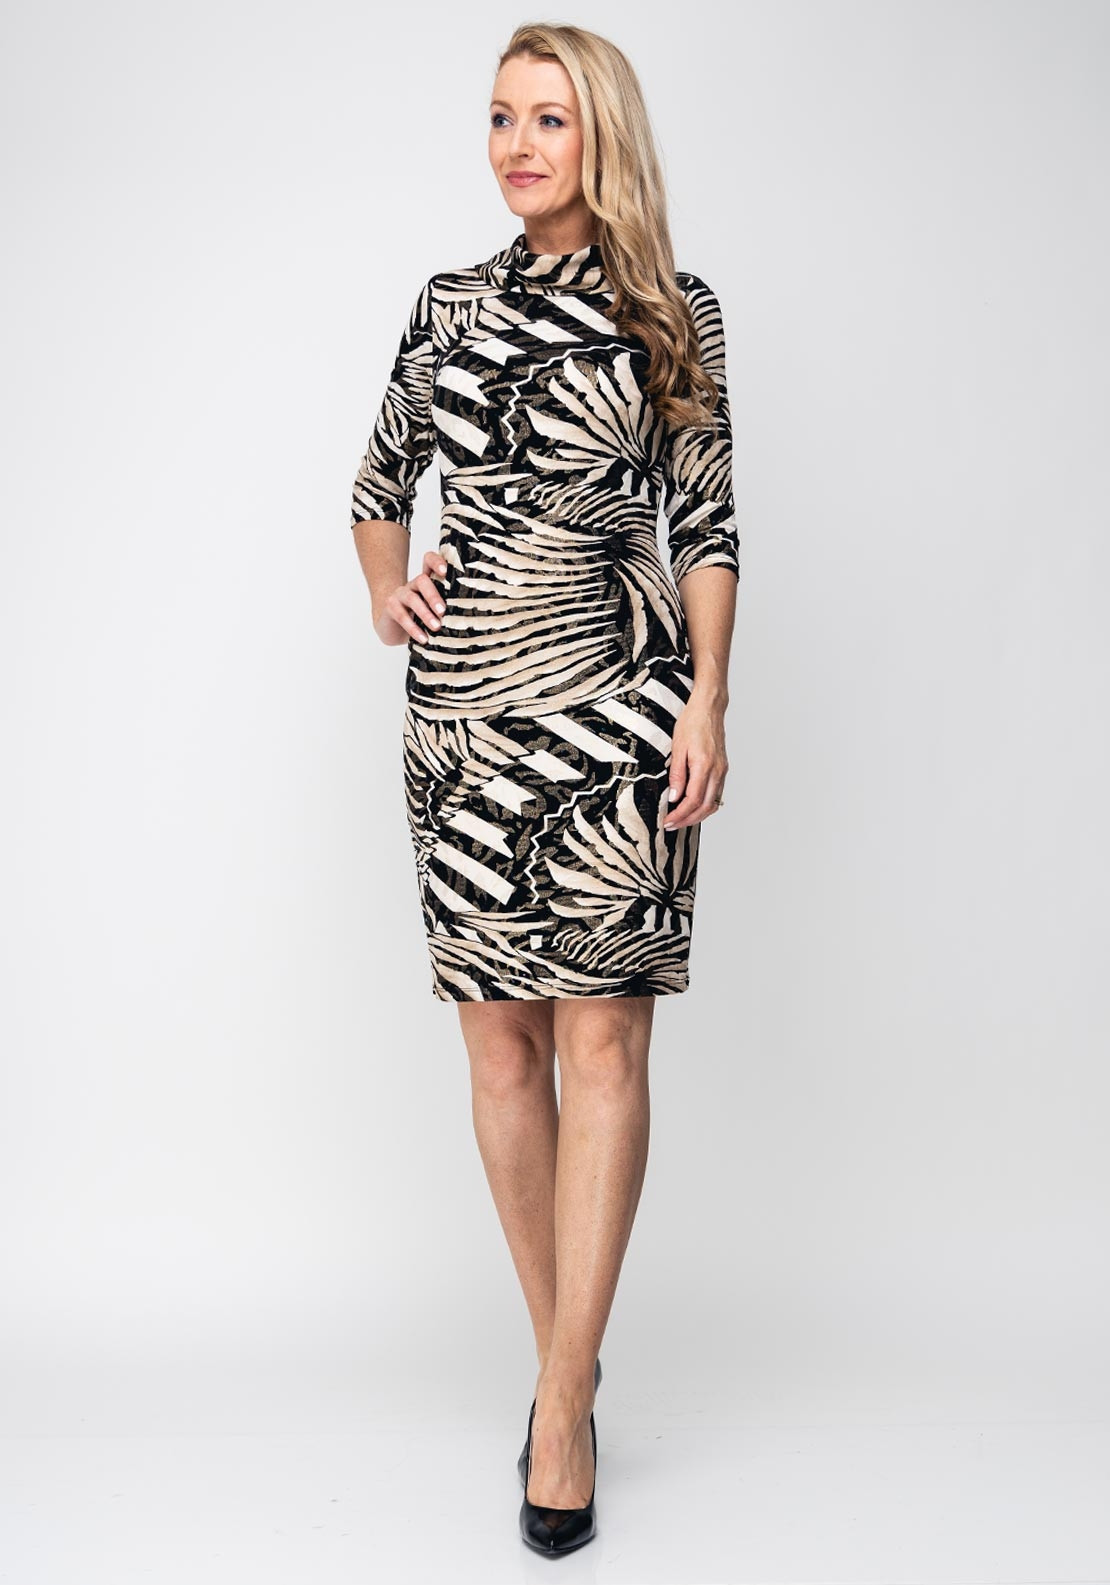 b3be6fb47751 Joseph Ribkoff Cowl Neck Metallic Print Dress, Gold. Be the first to review  this product